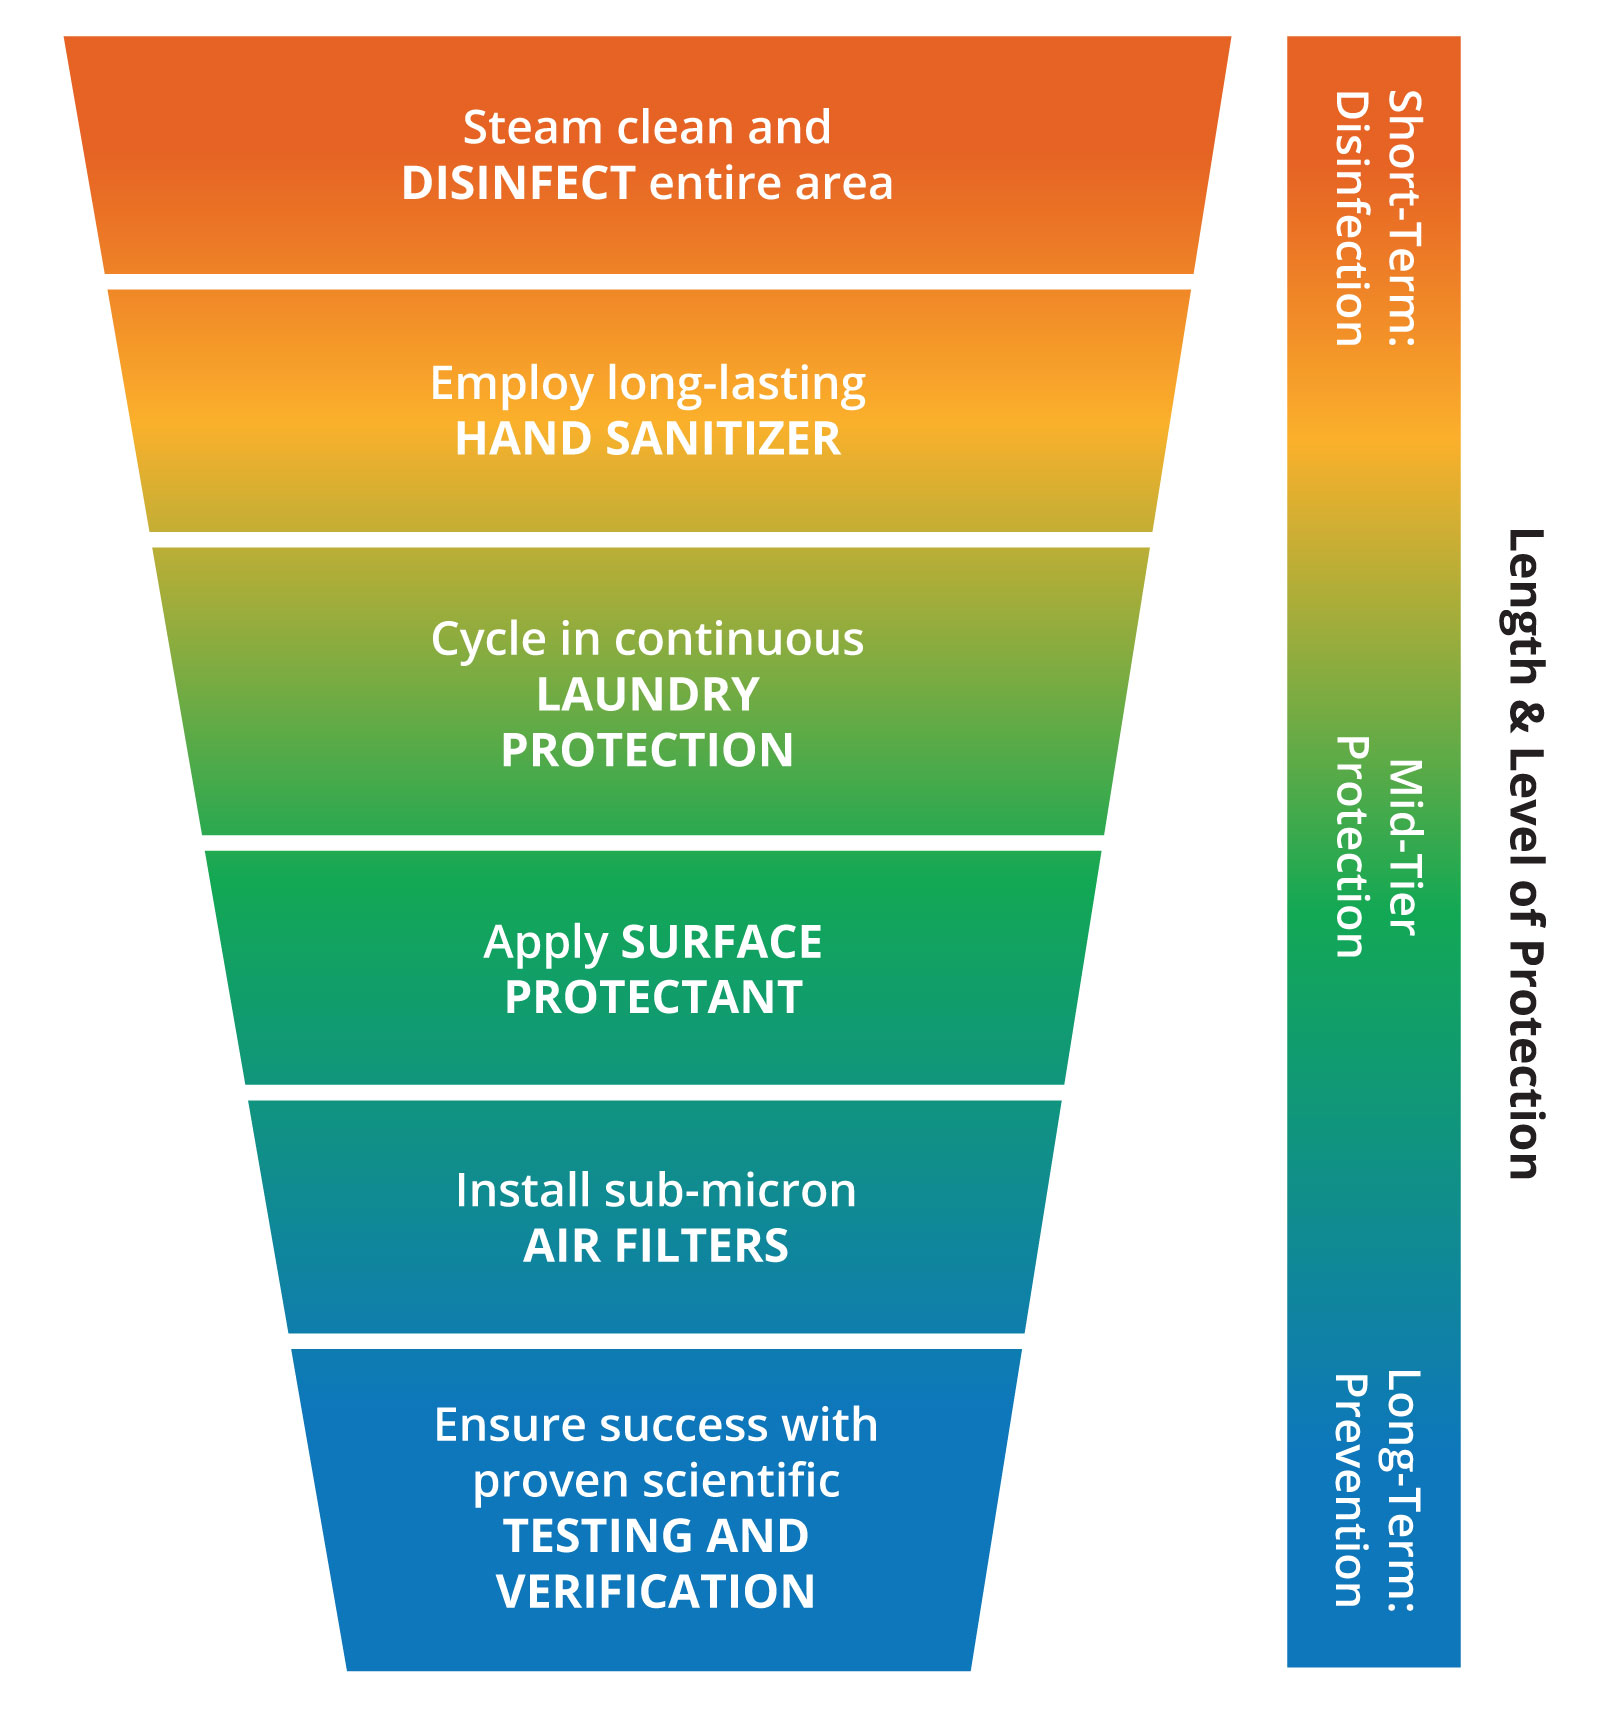 layered services infographic